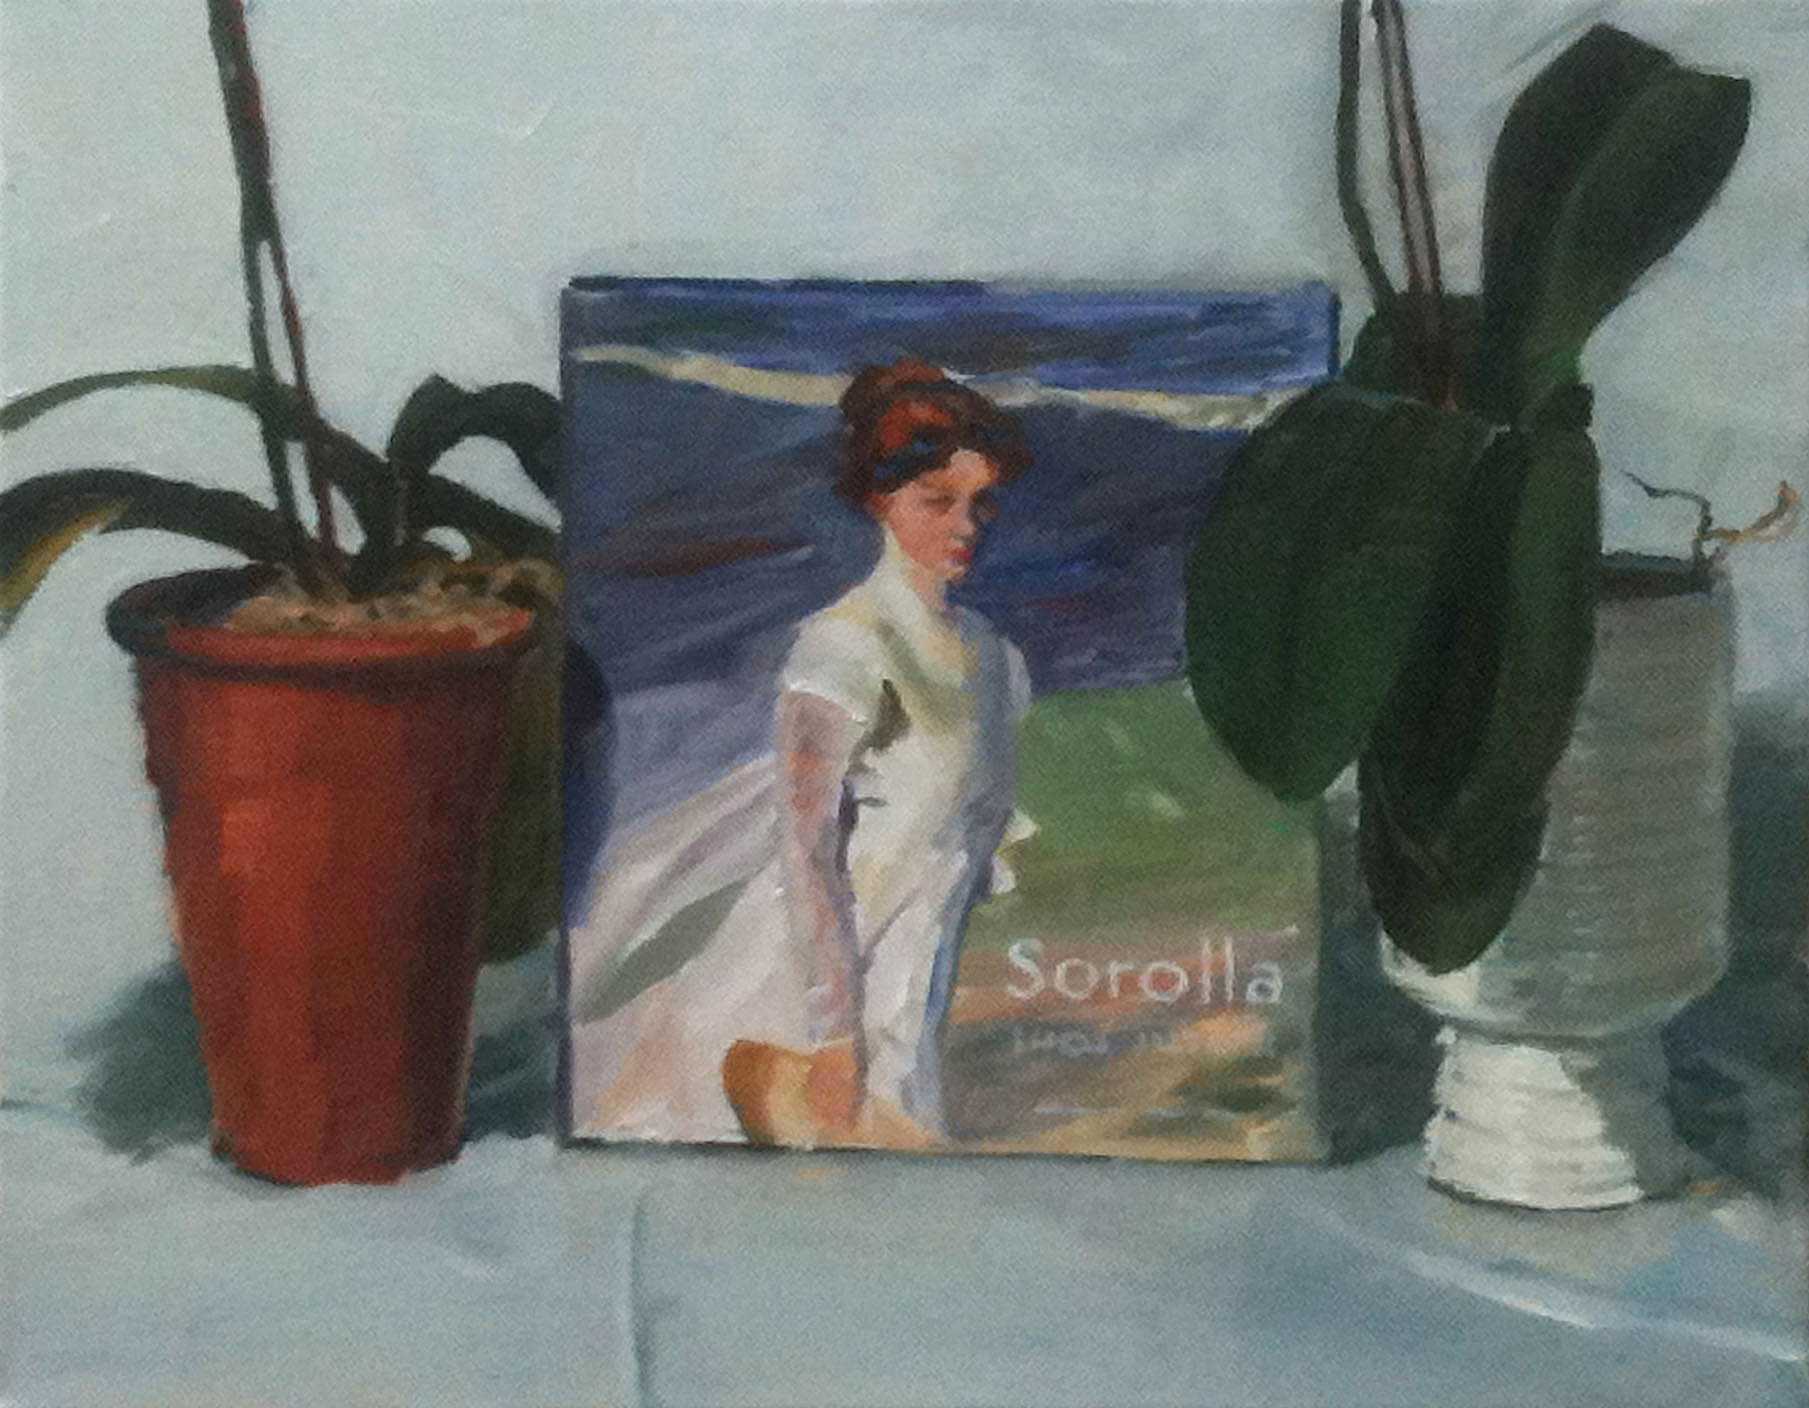 RS-183, Sorolla copy, oil on canvas, 2015, 18x14, $950